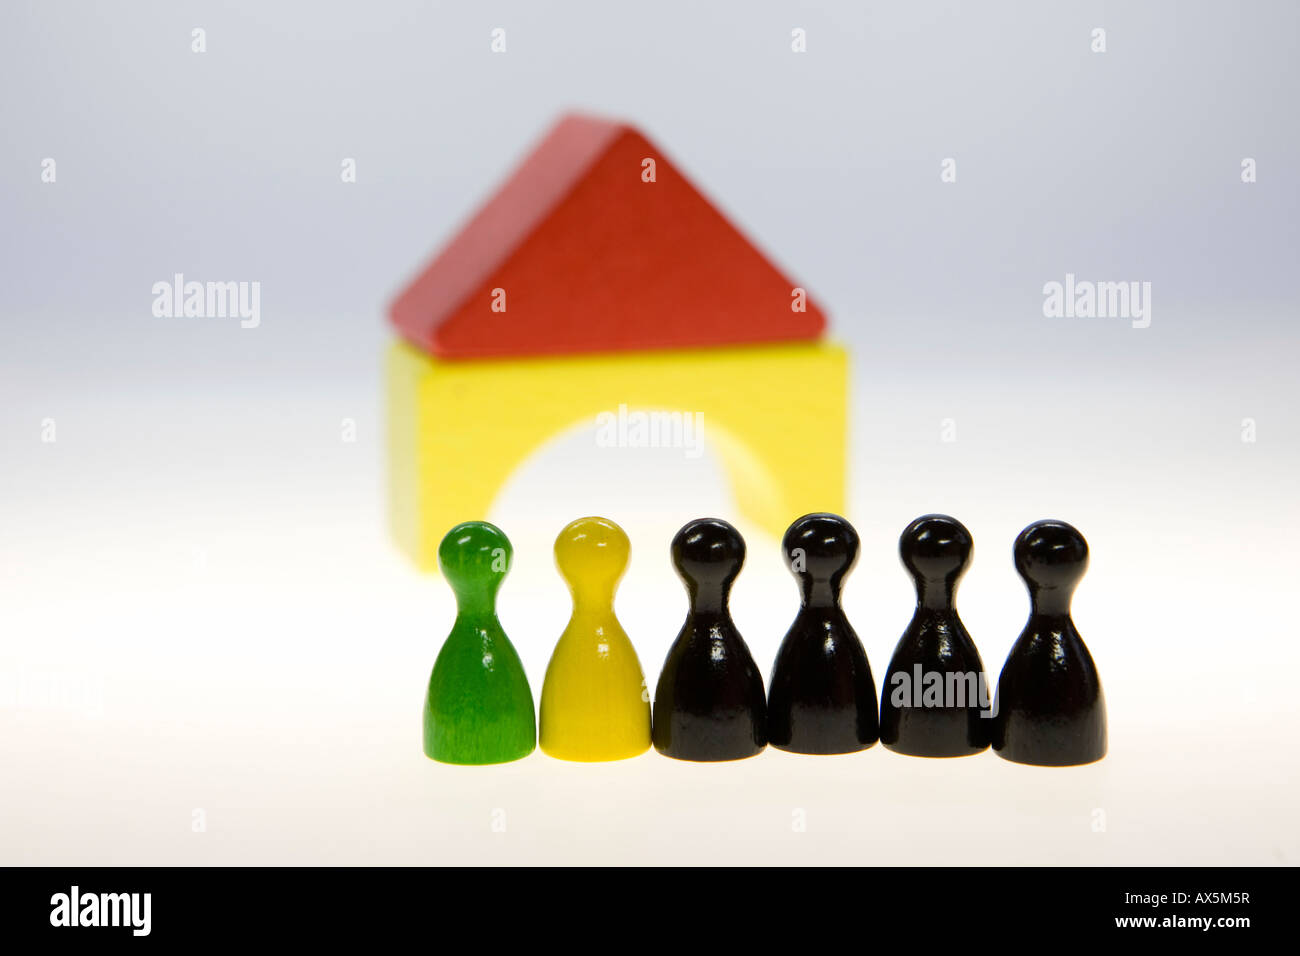 Black-yellow-green coalition in the German parliament (Bundestag, Landtag) Stock Photo